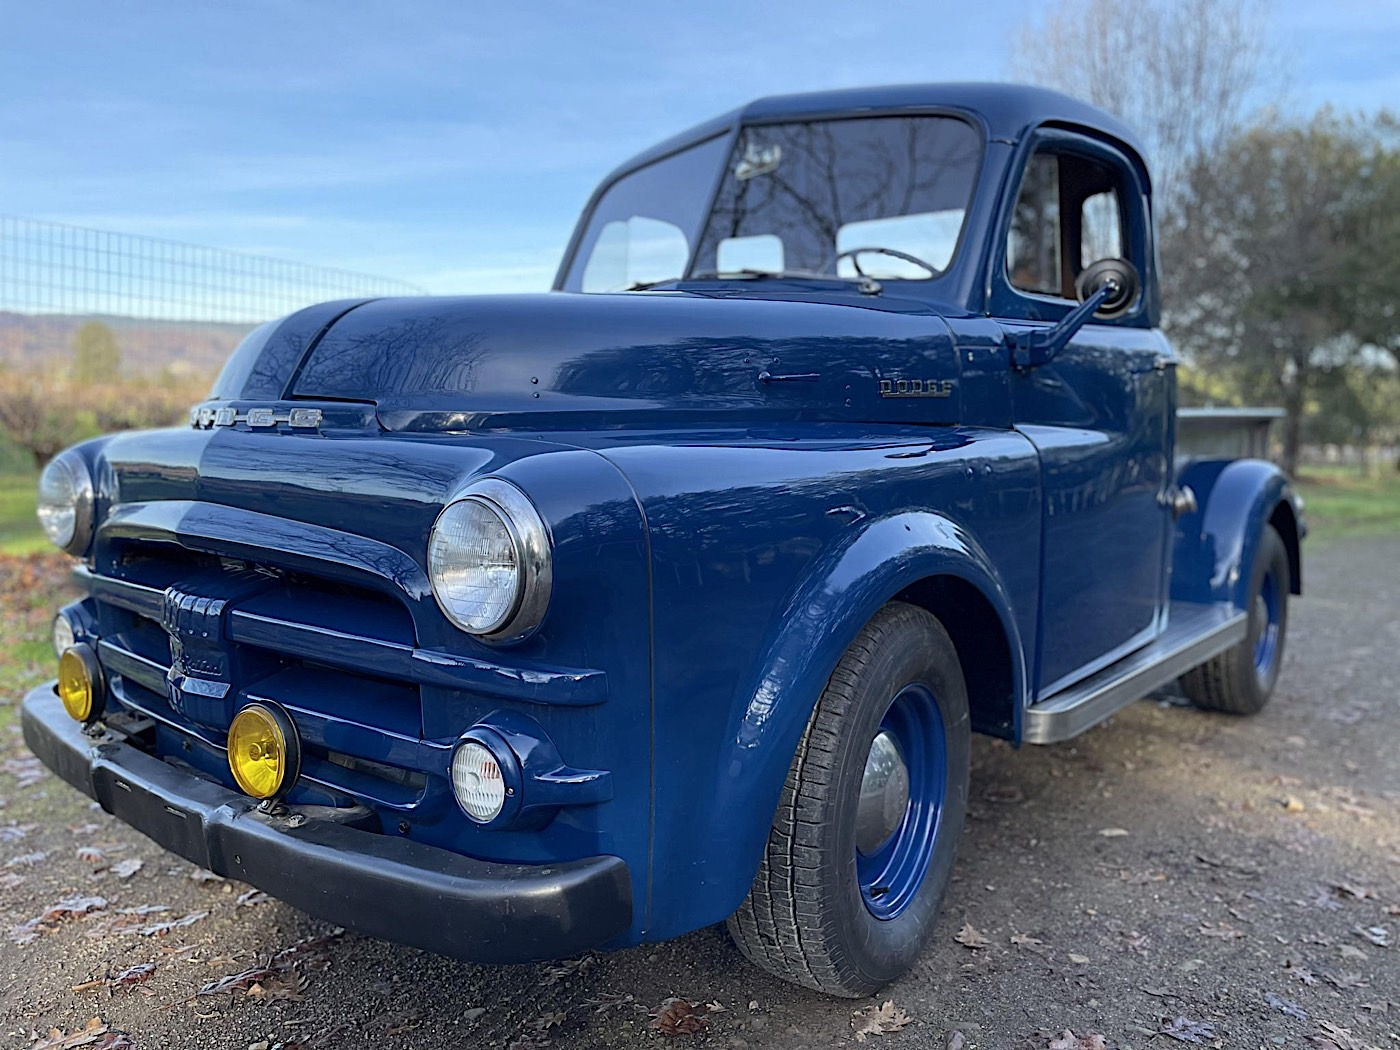 There S Some Imperial Hemi Power Under This Unassuming 1952 Dodge B Series Body Autoevolution